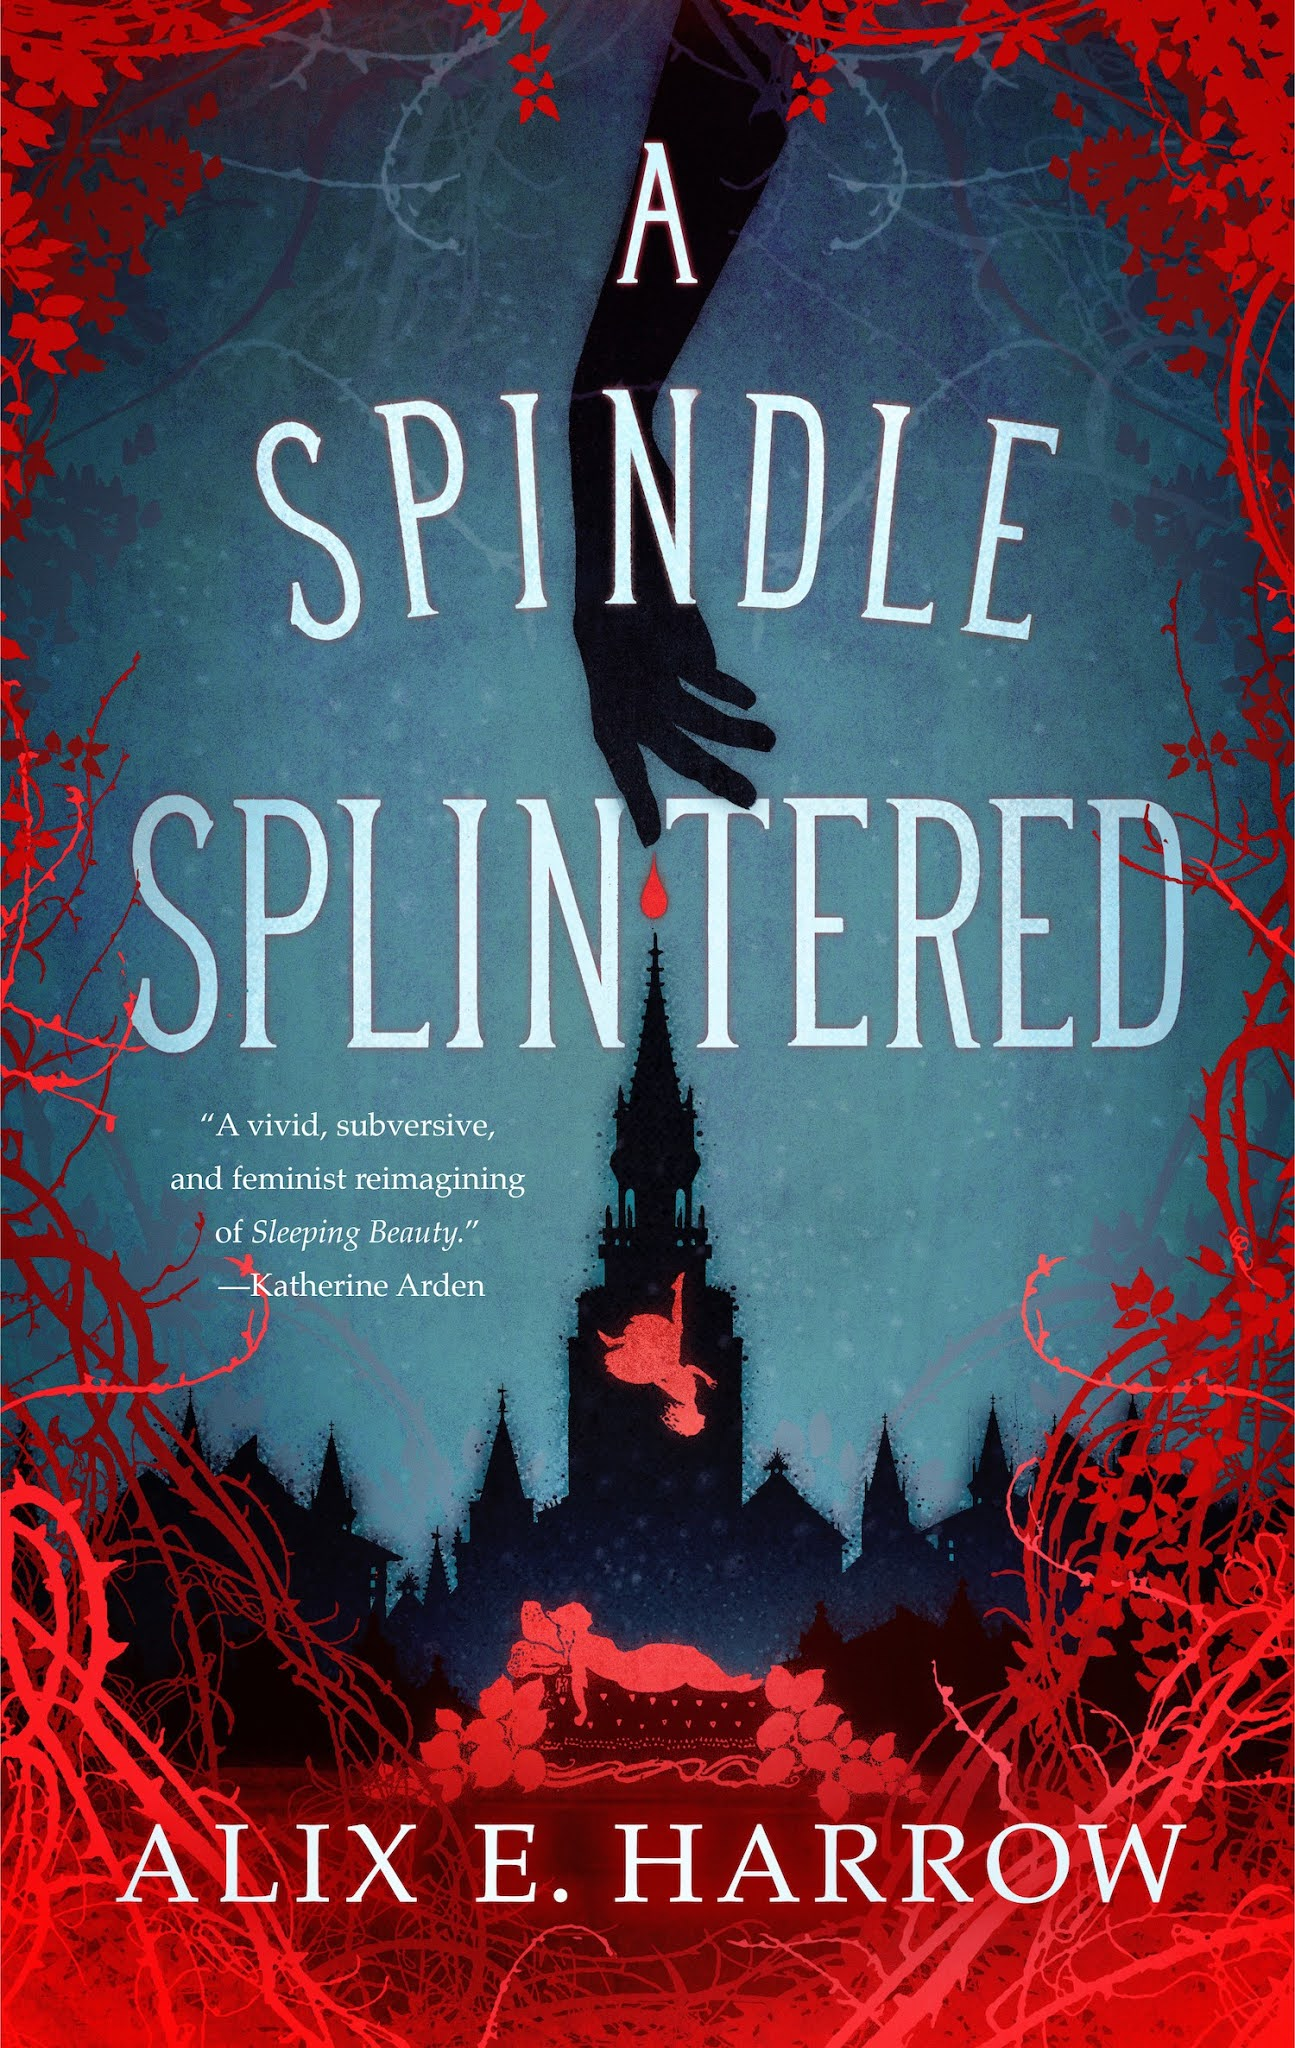 A Splintered Spindle by Alix E. Harrow